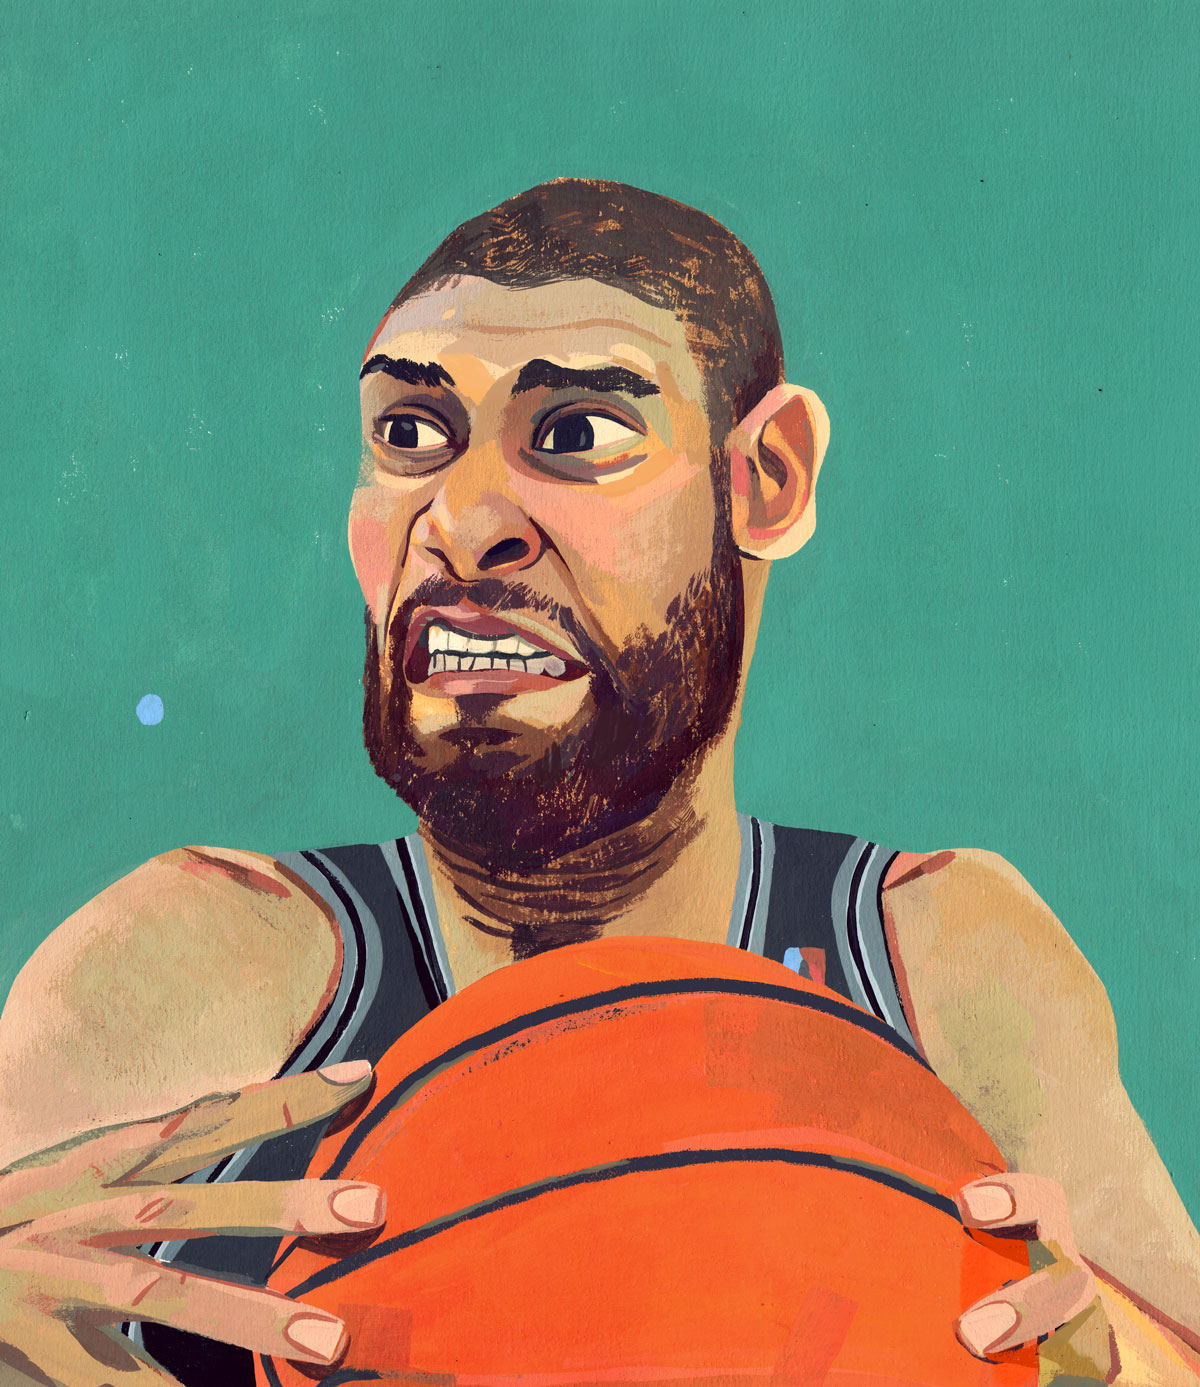 Happy NBA finals everybody! Here's a portrait of Tim Duncan, an unfinished painting for a zine. Gouache on paper    Excited to watch the series.